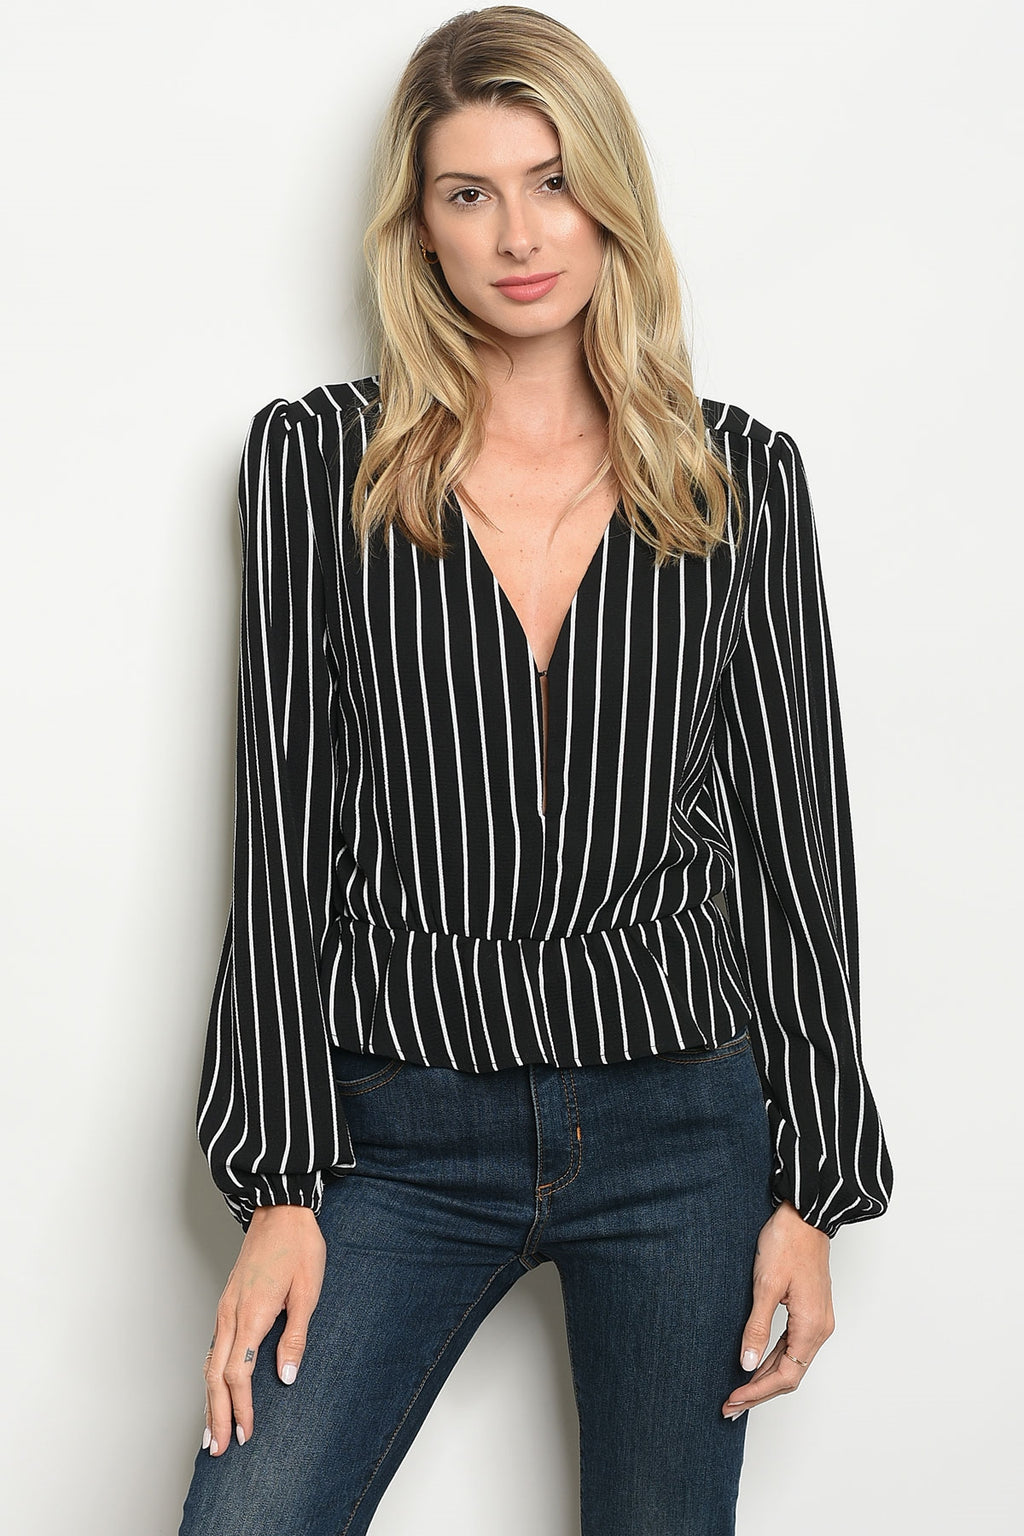 Baby Be Line Striped Top (Black)